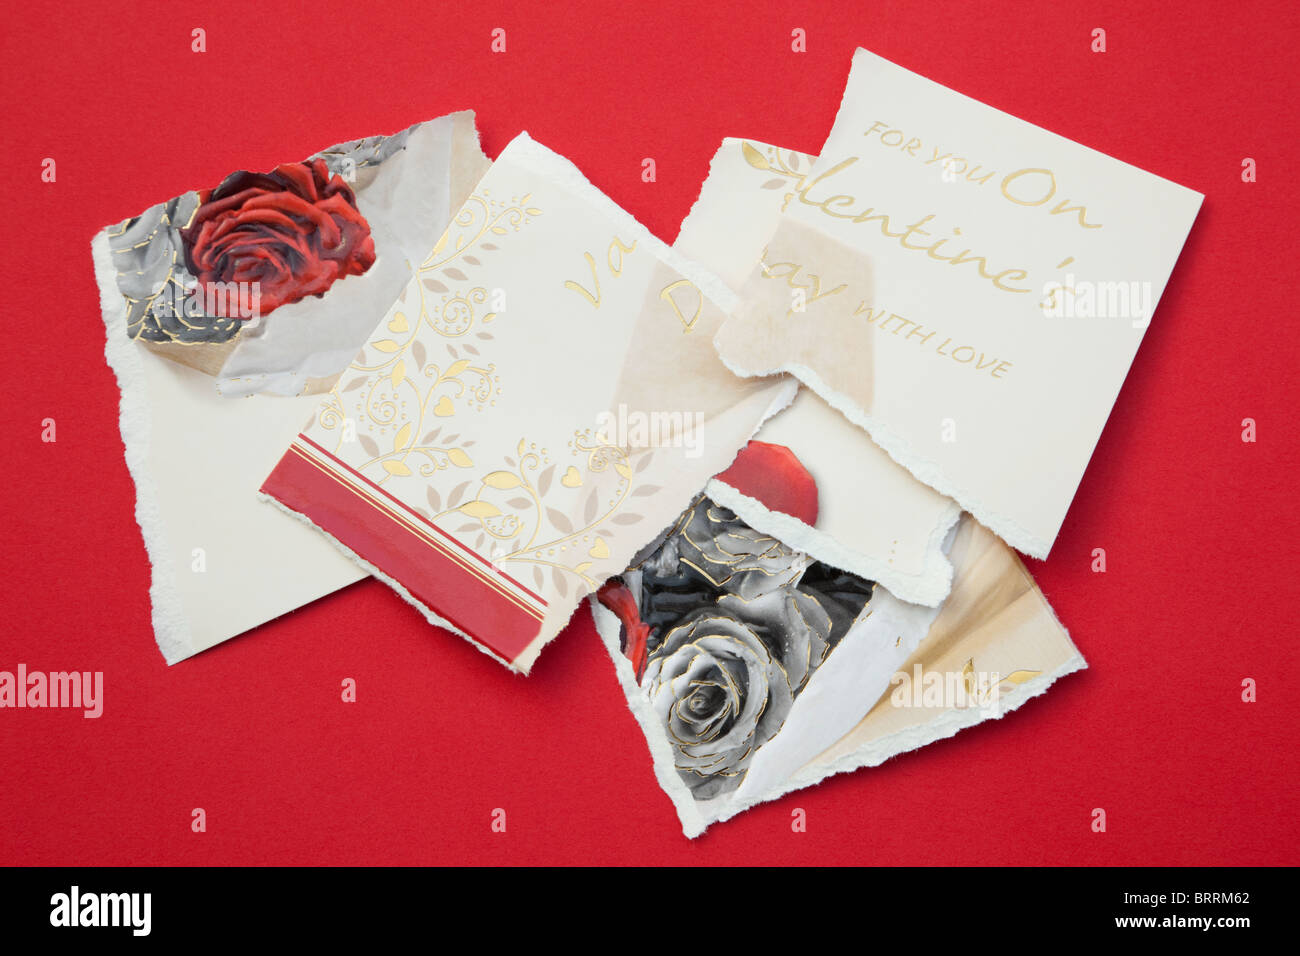 Torn pieces of a Valentine card on a red background - Stock Image